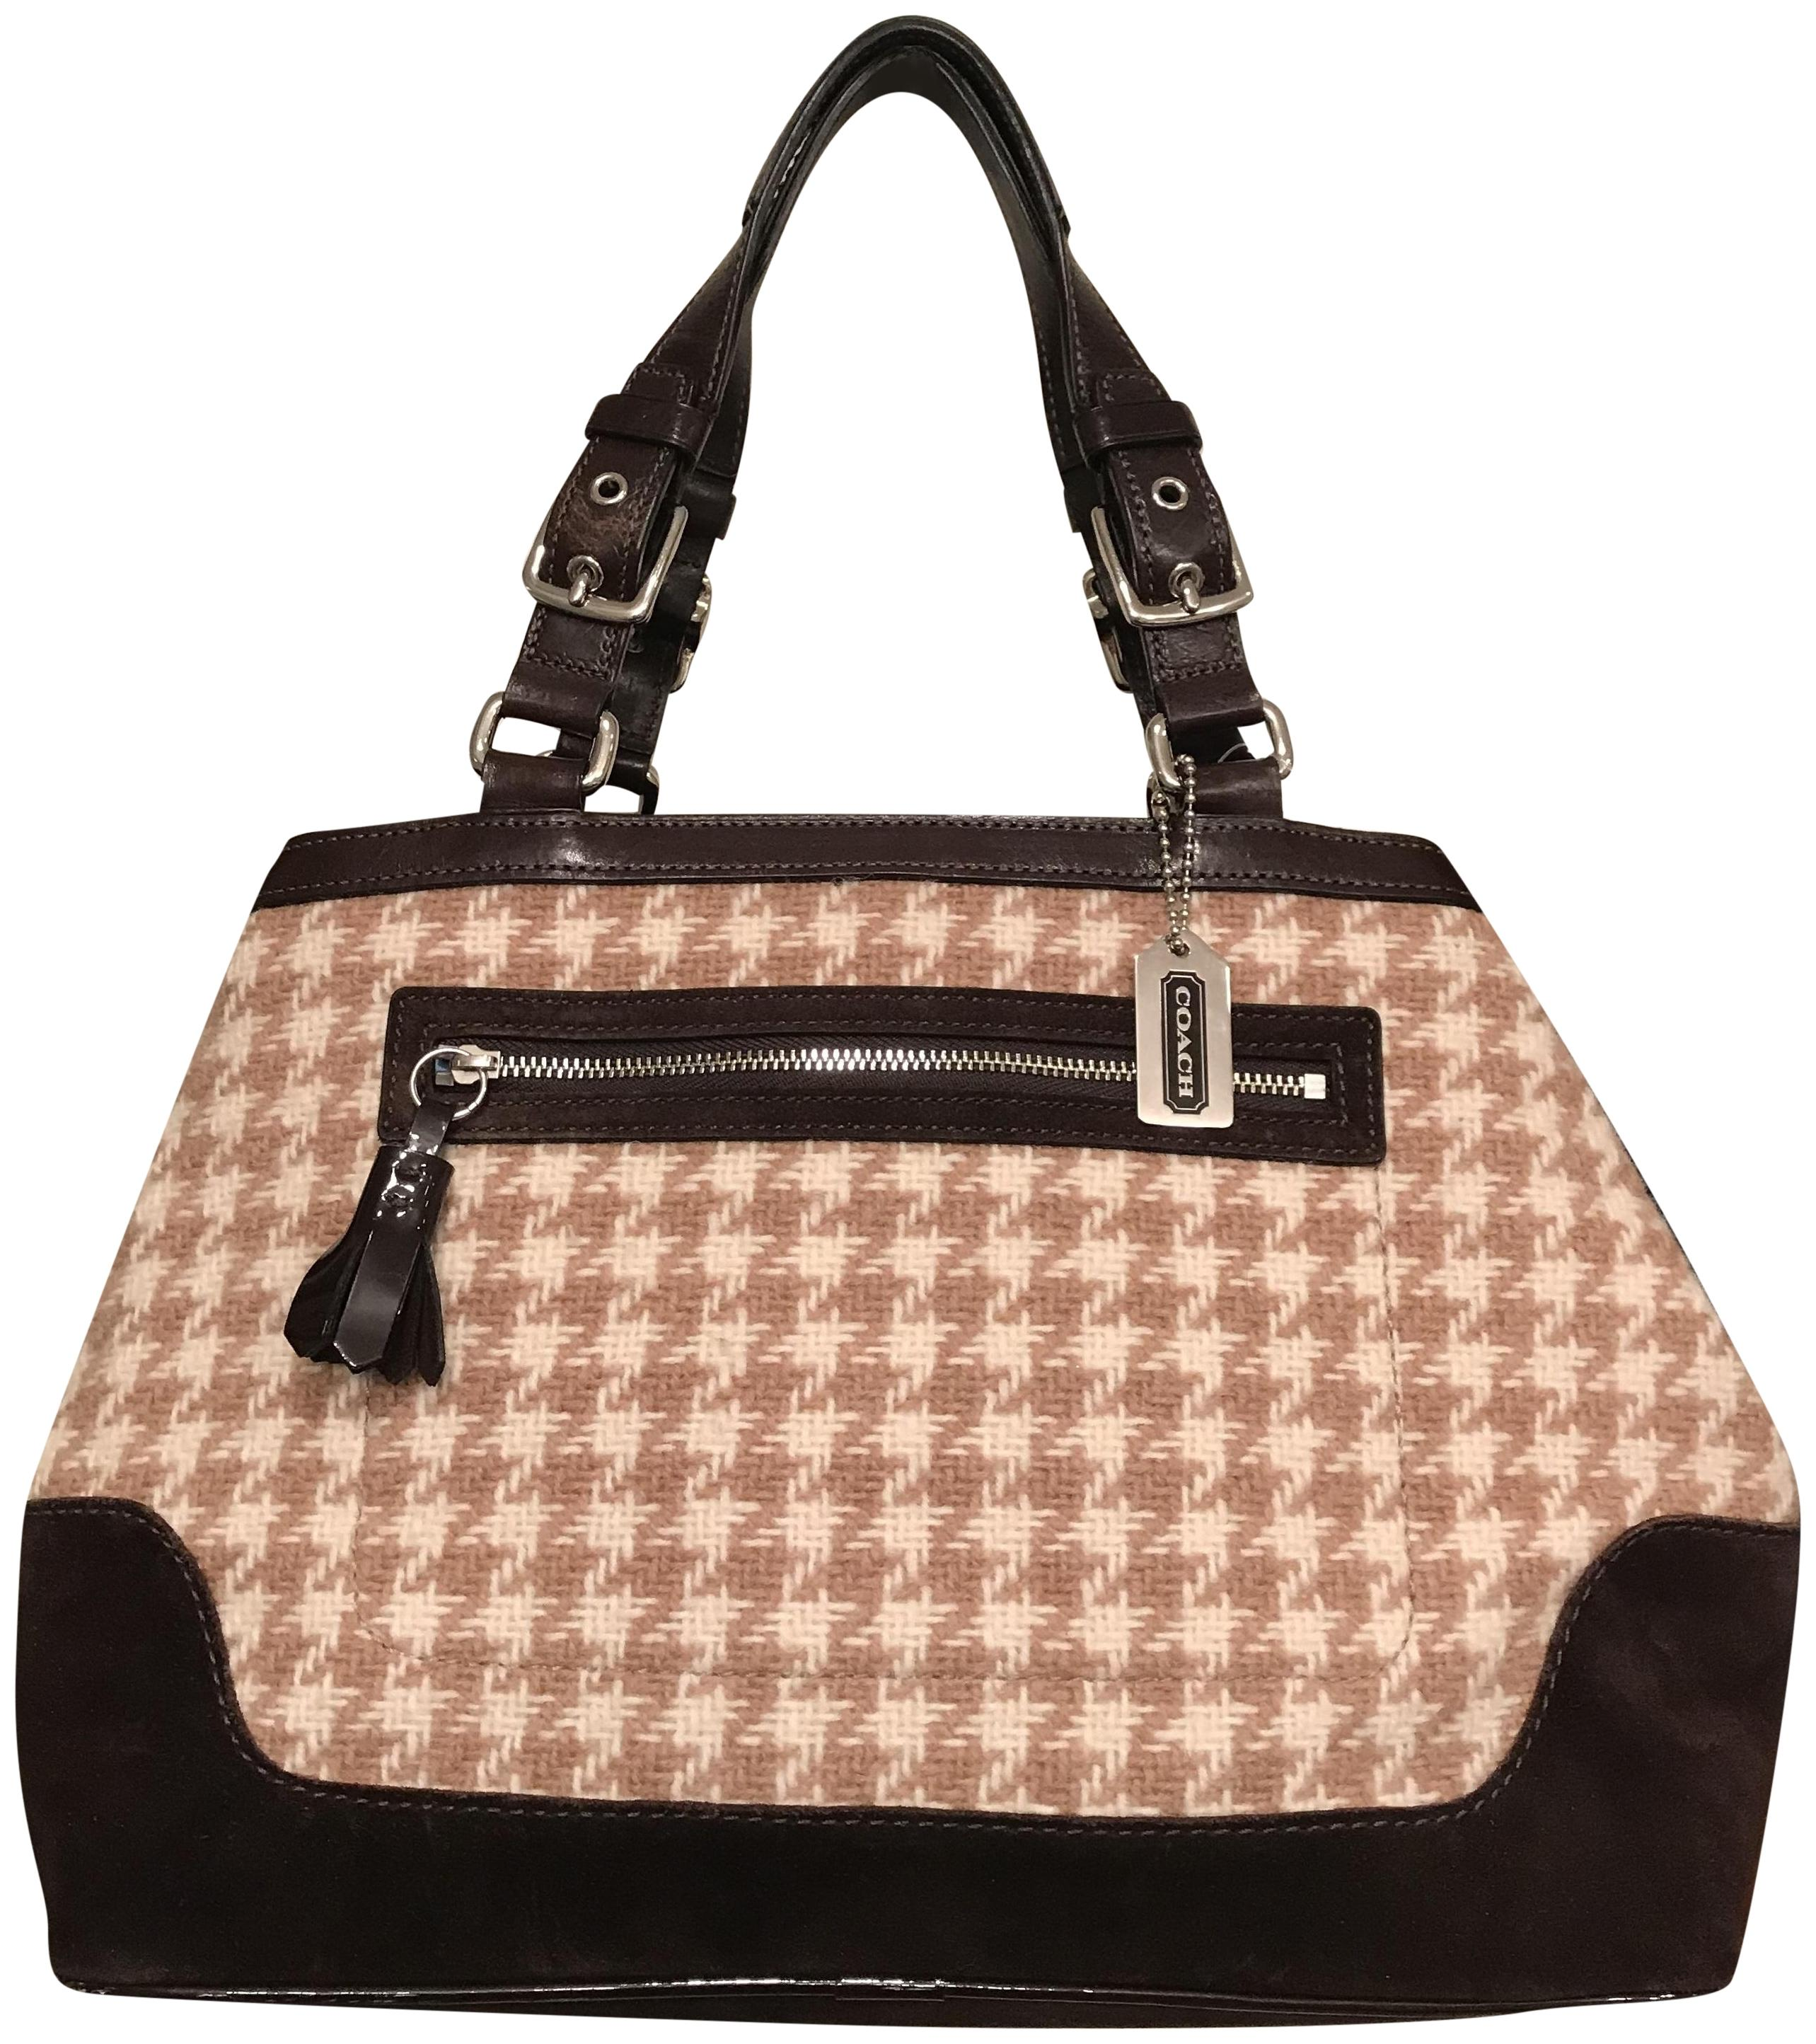 f4f0286dc ... clearance coach tote brown wool satchel tradesy 700d4 406a3